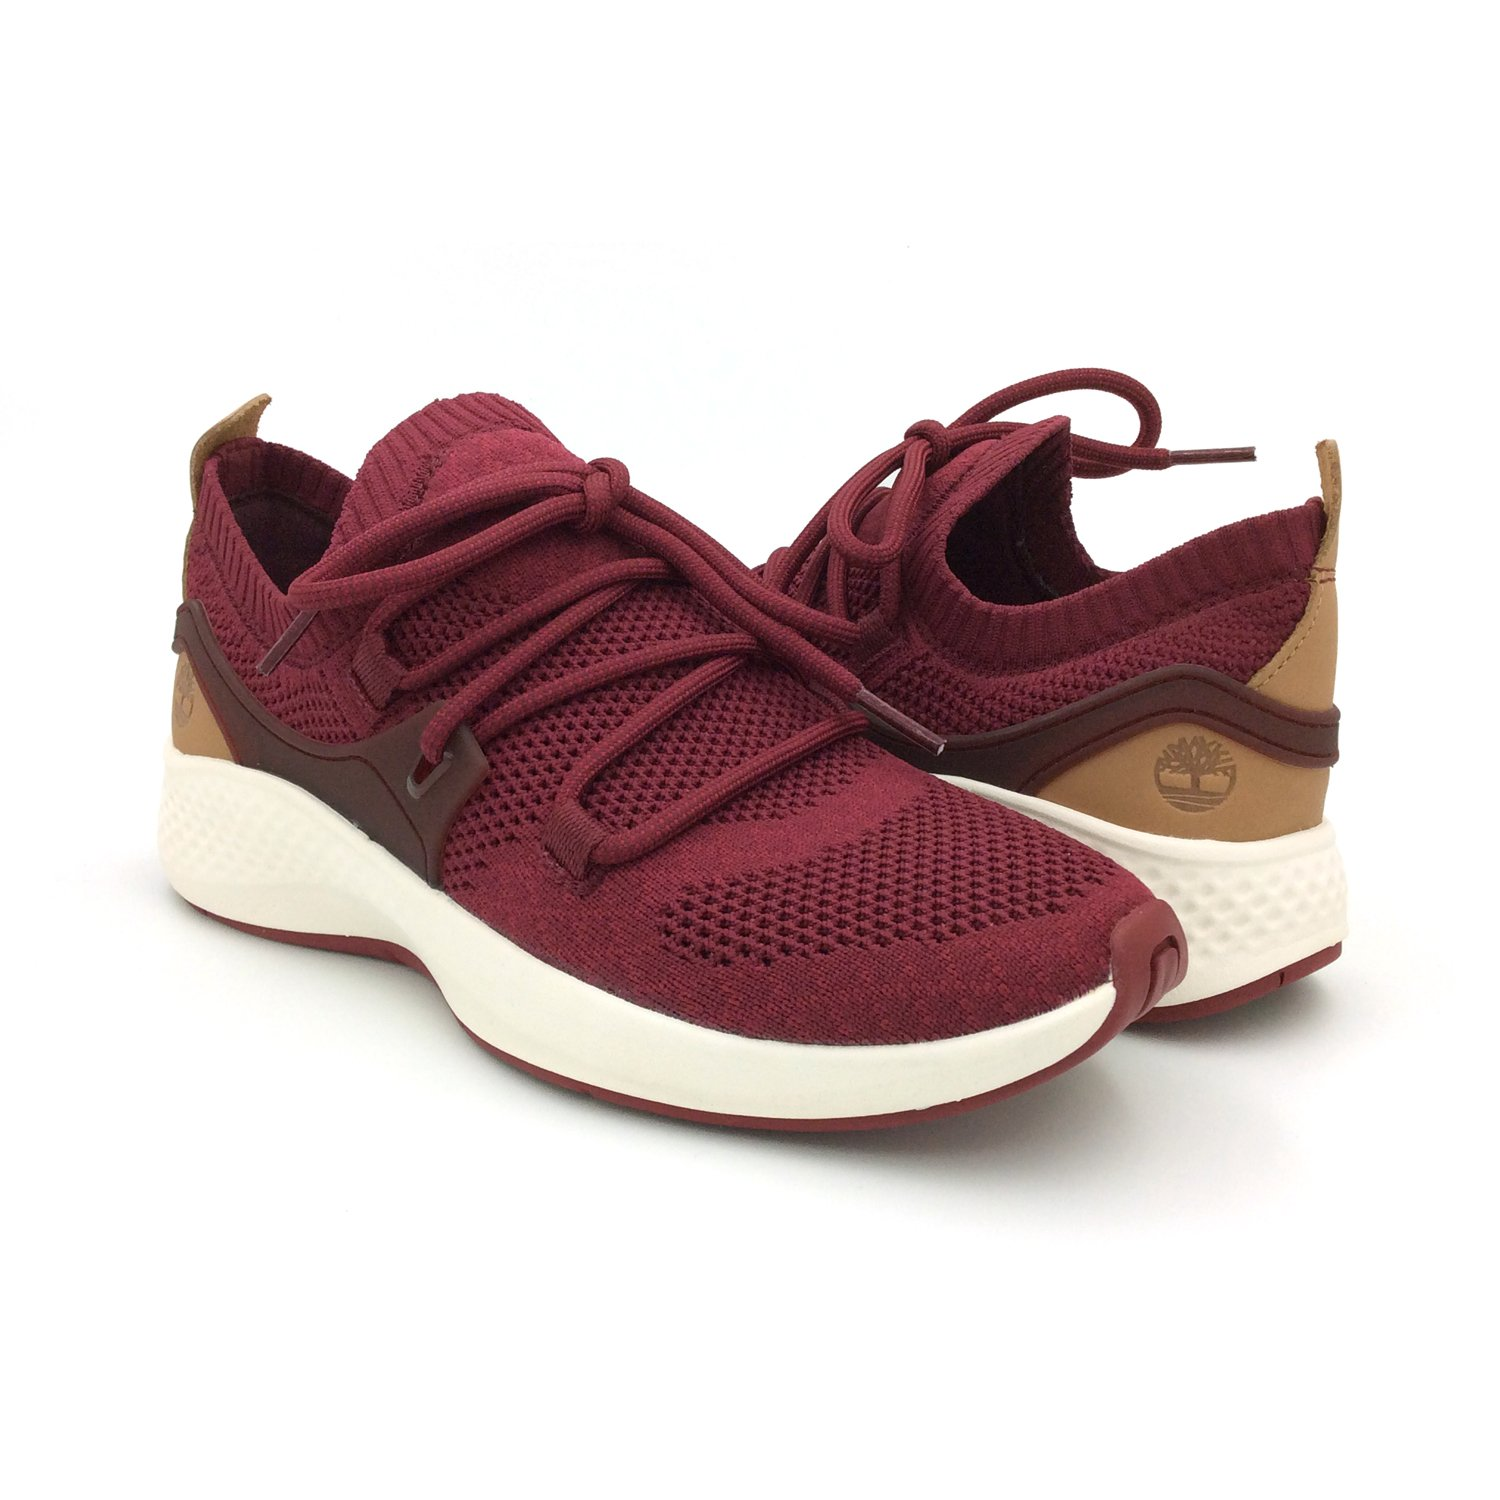 Allrounder by Mephisto Dascha Tex Sneaker(Women's) -Black Rubber/Fog G Nubuck Cheap Sale Reliable Discount 2018 New Sale Visa Payment Cheap Sale Outlet Locations Buy Cheap Manchester z3dSdK23g